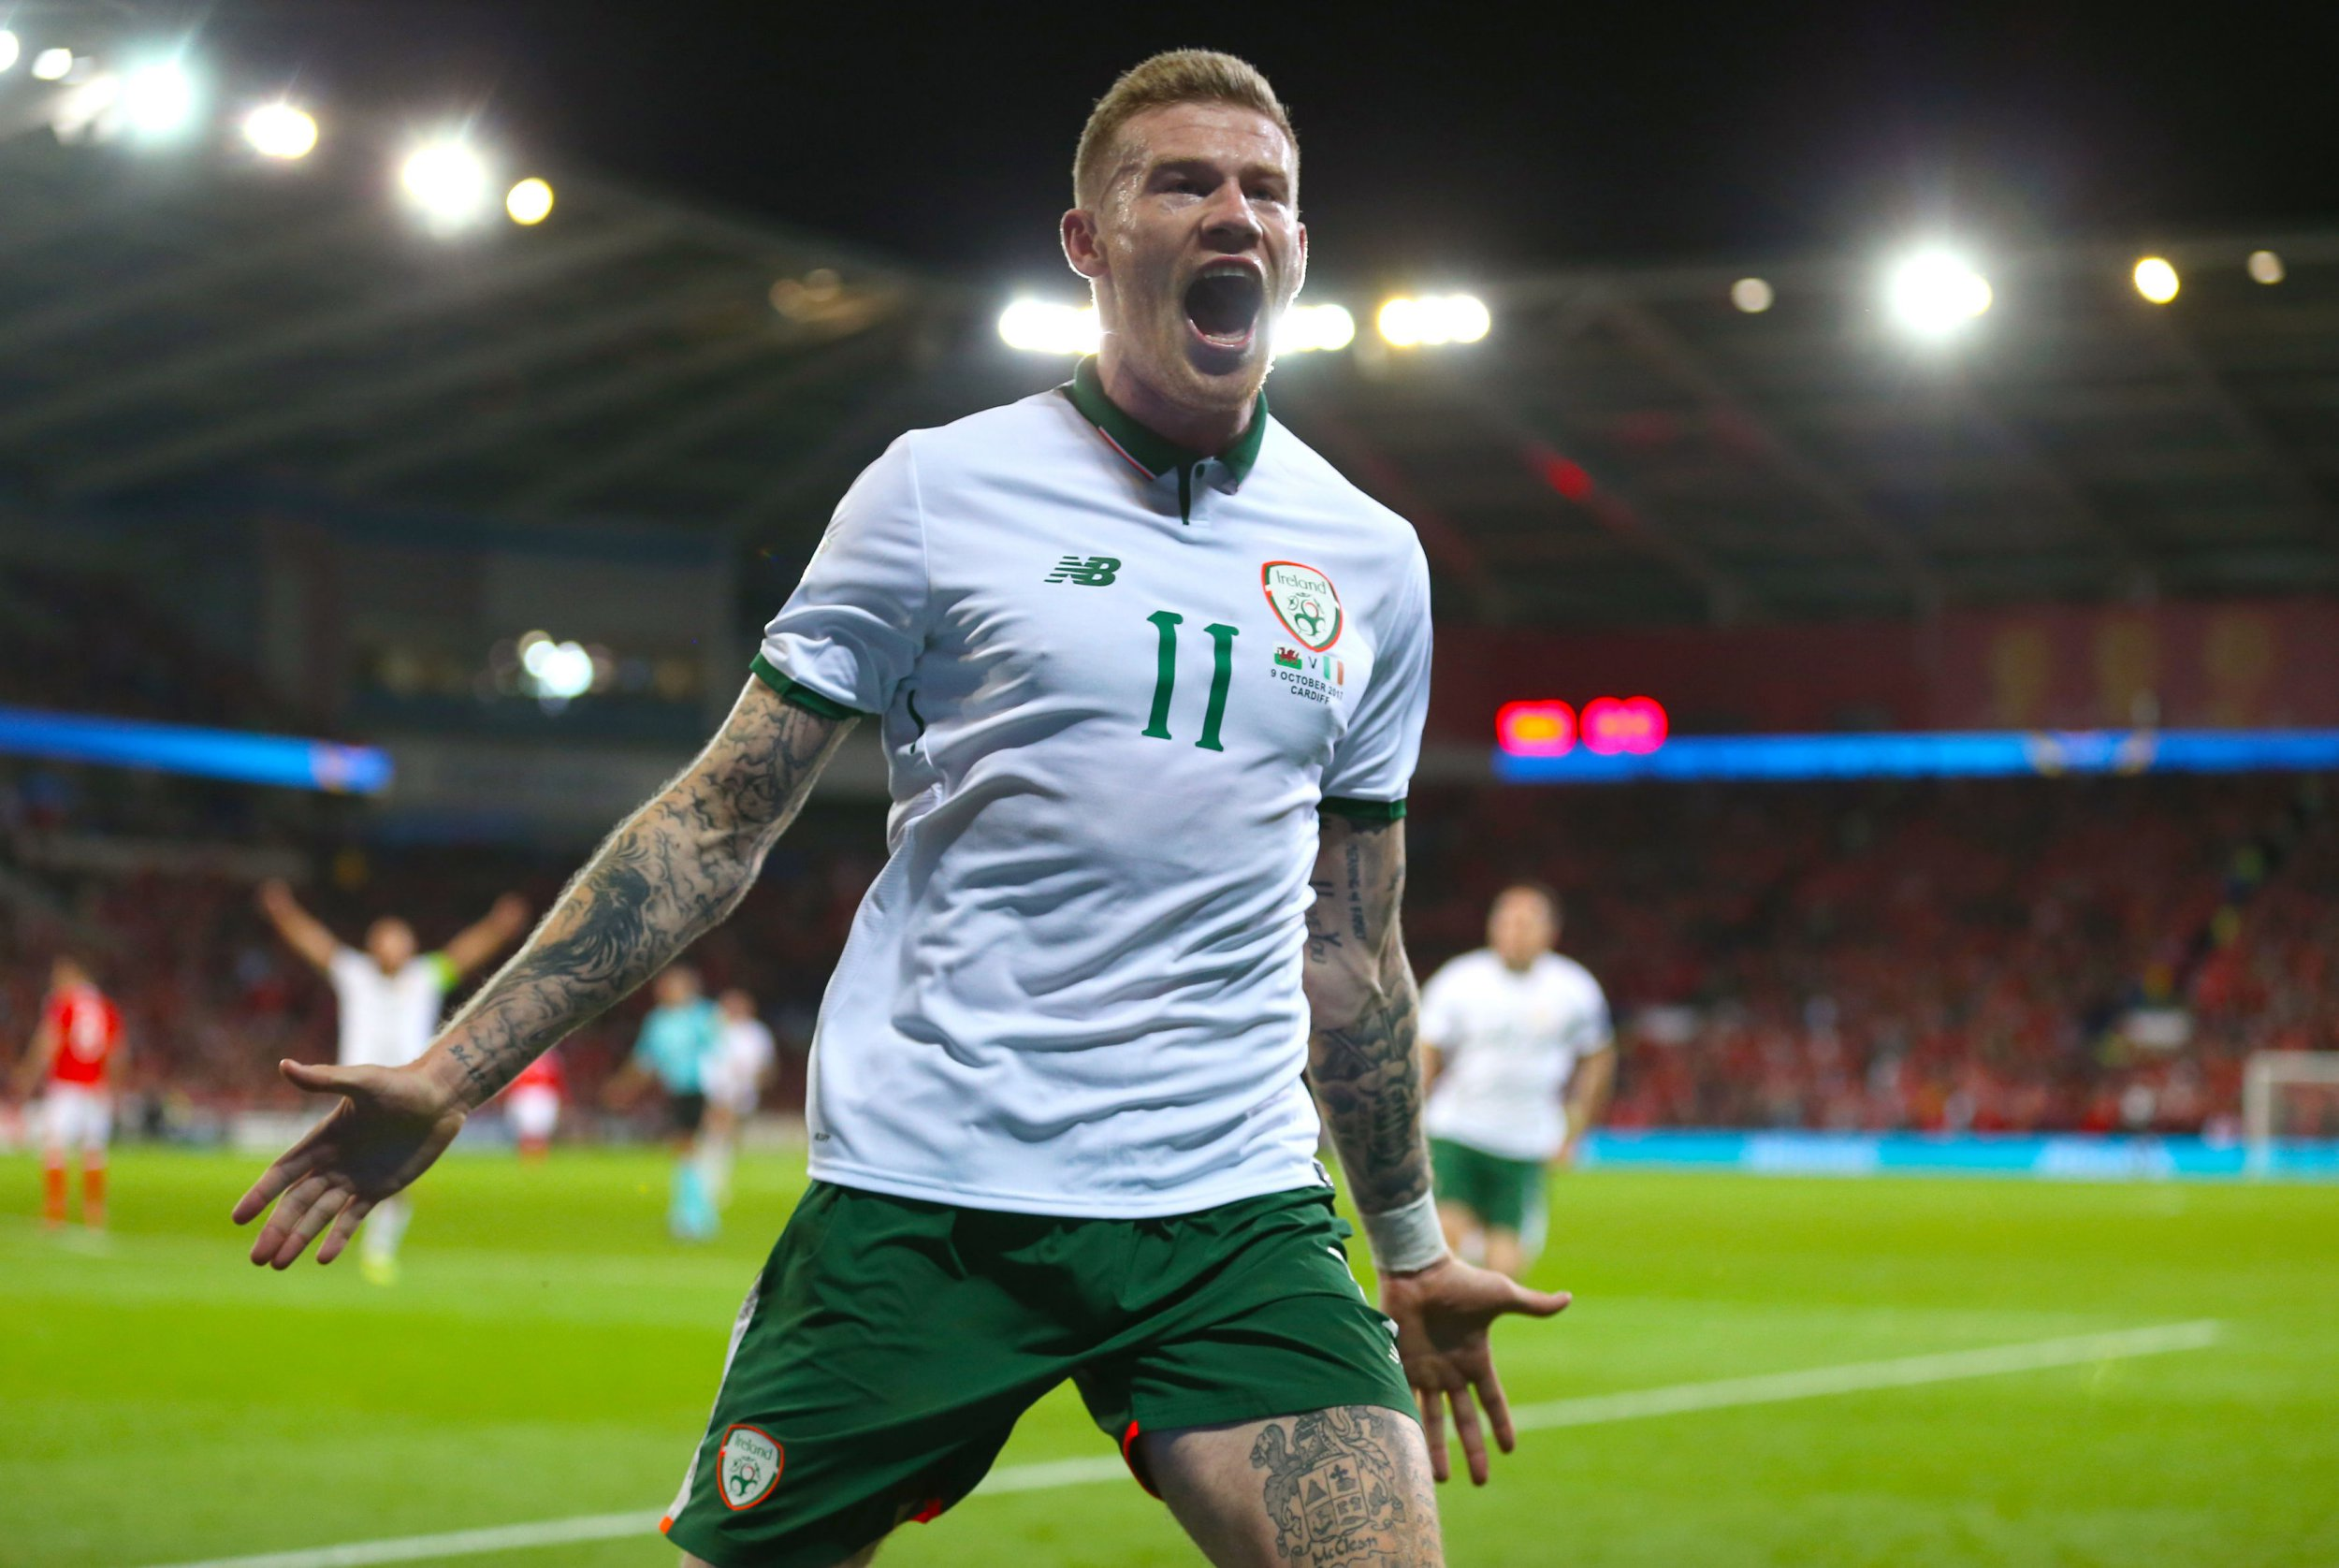 Denmark vs Republic of Ireland TV channel, kick-off time, date, odds and squads